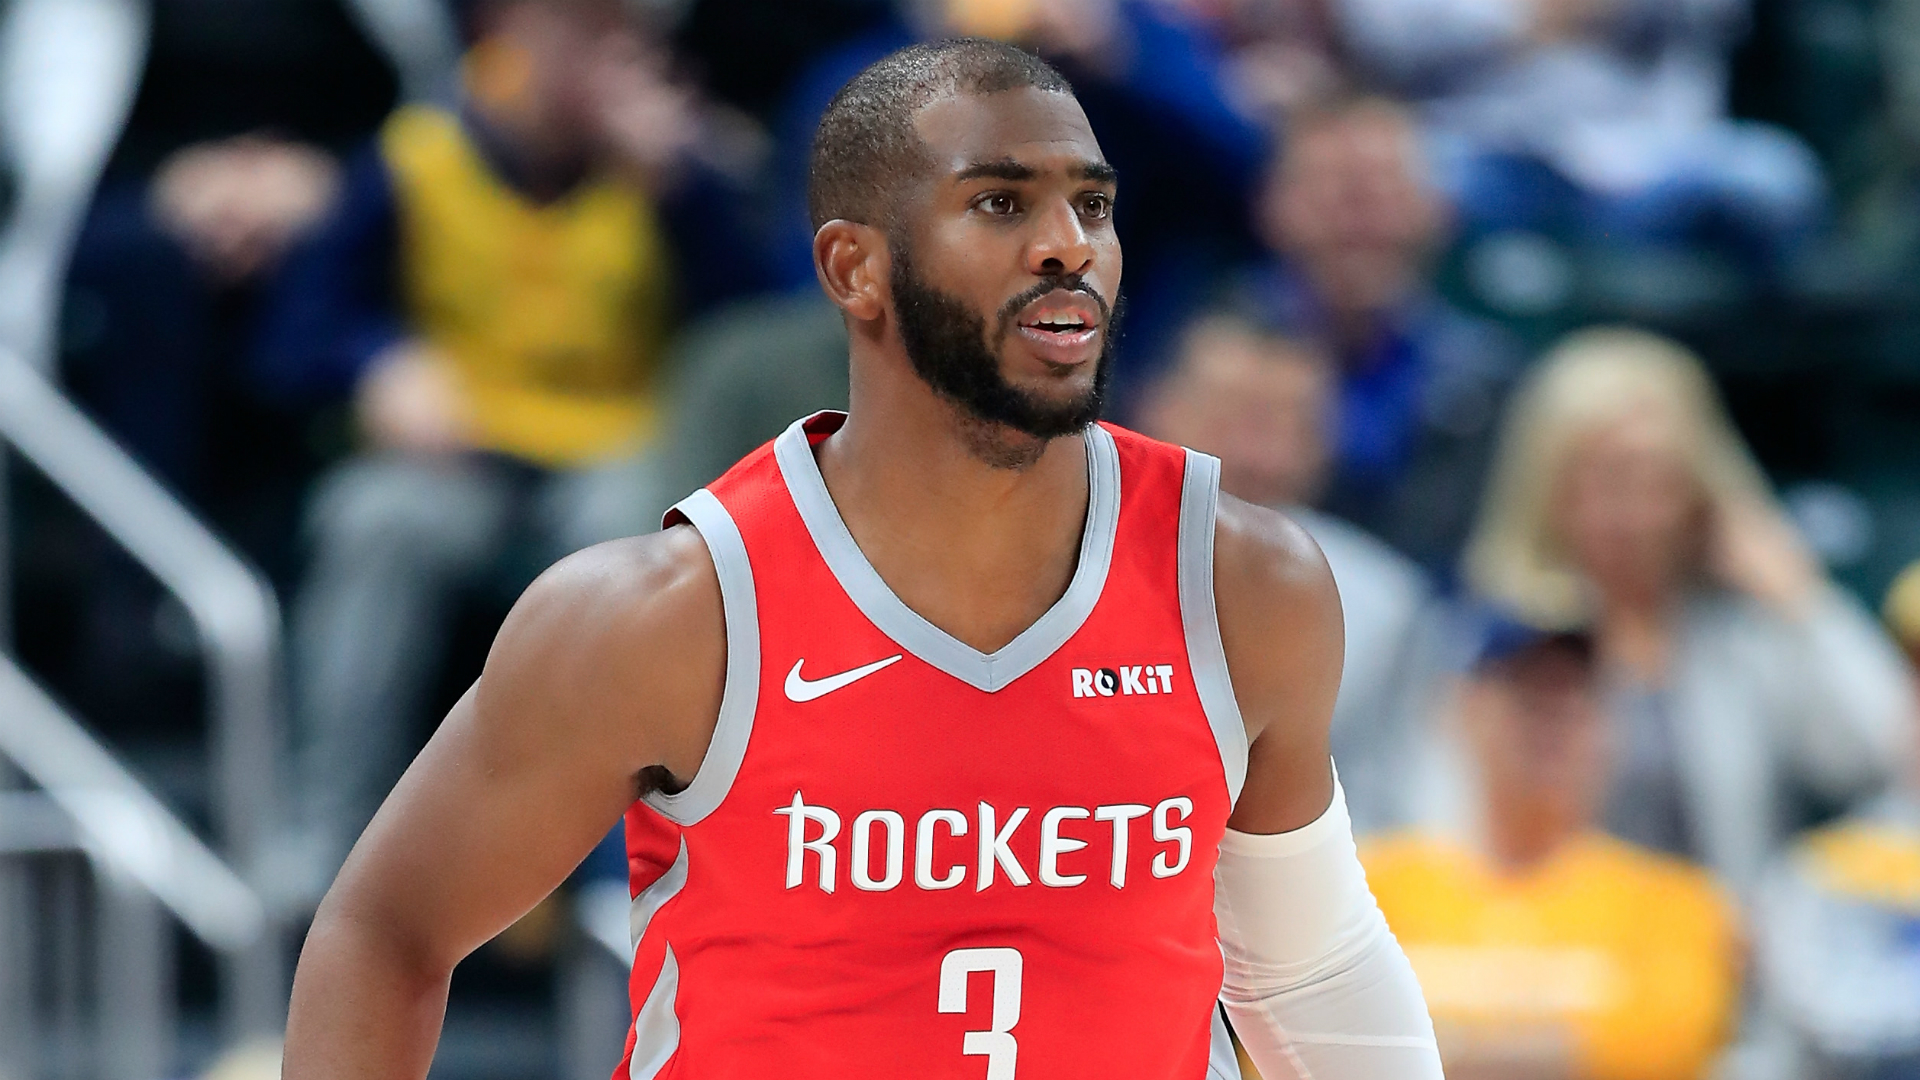 Rockets' Paul out at least 2 weeks with hamstring injury